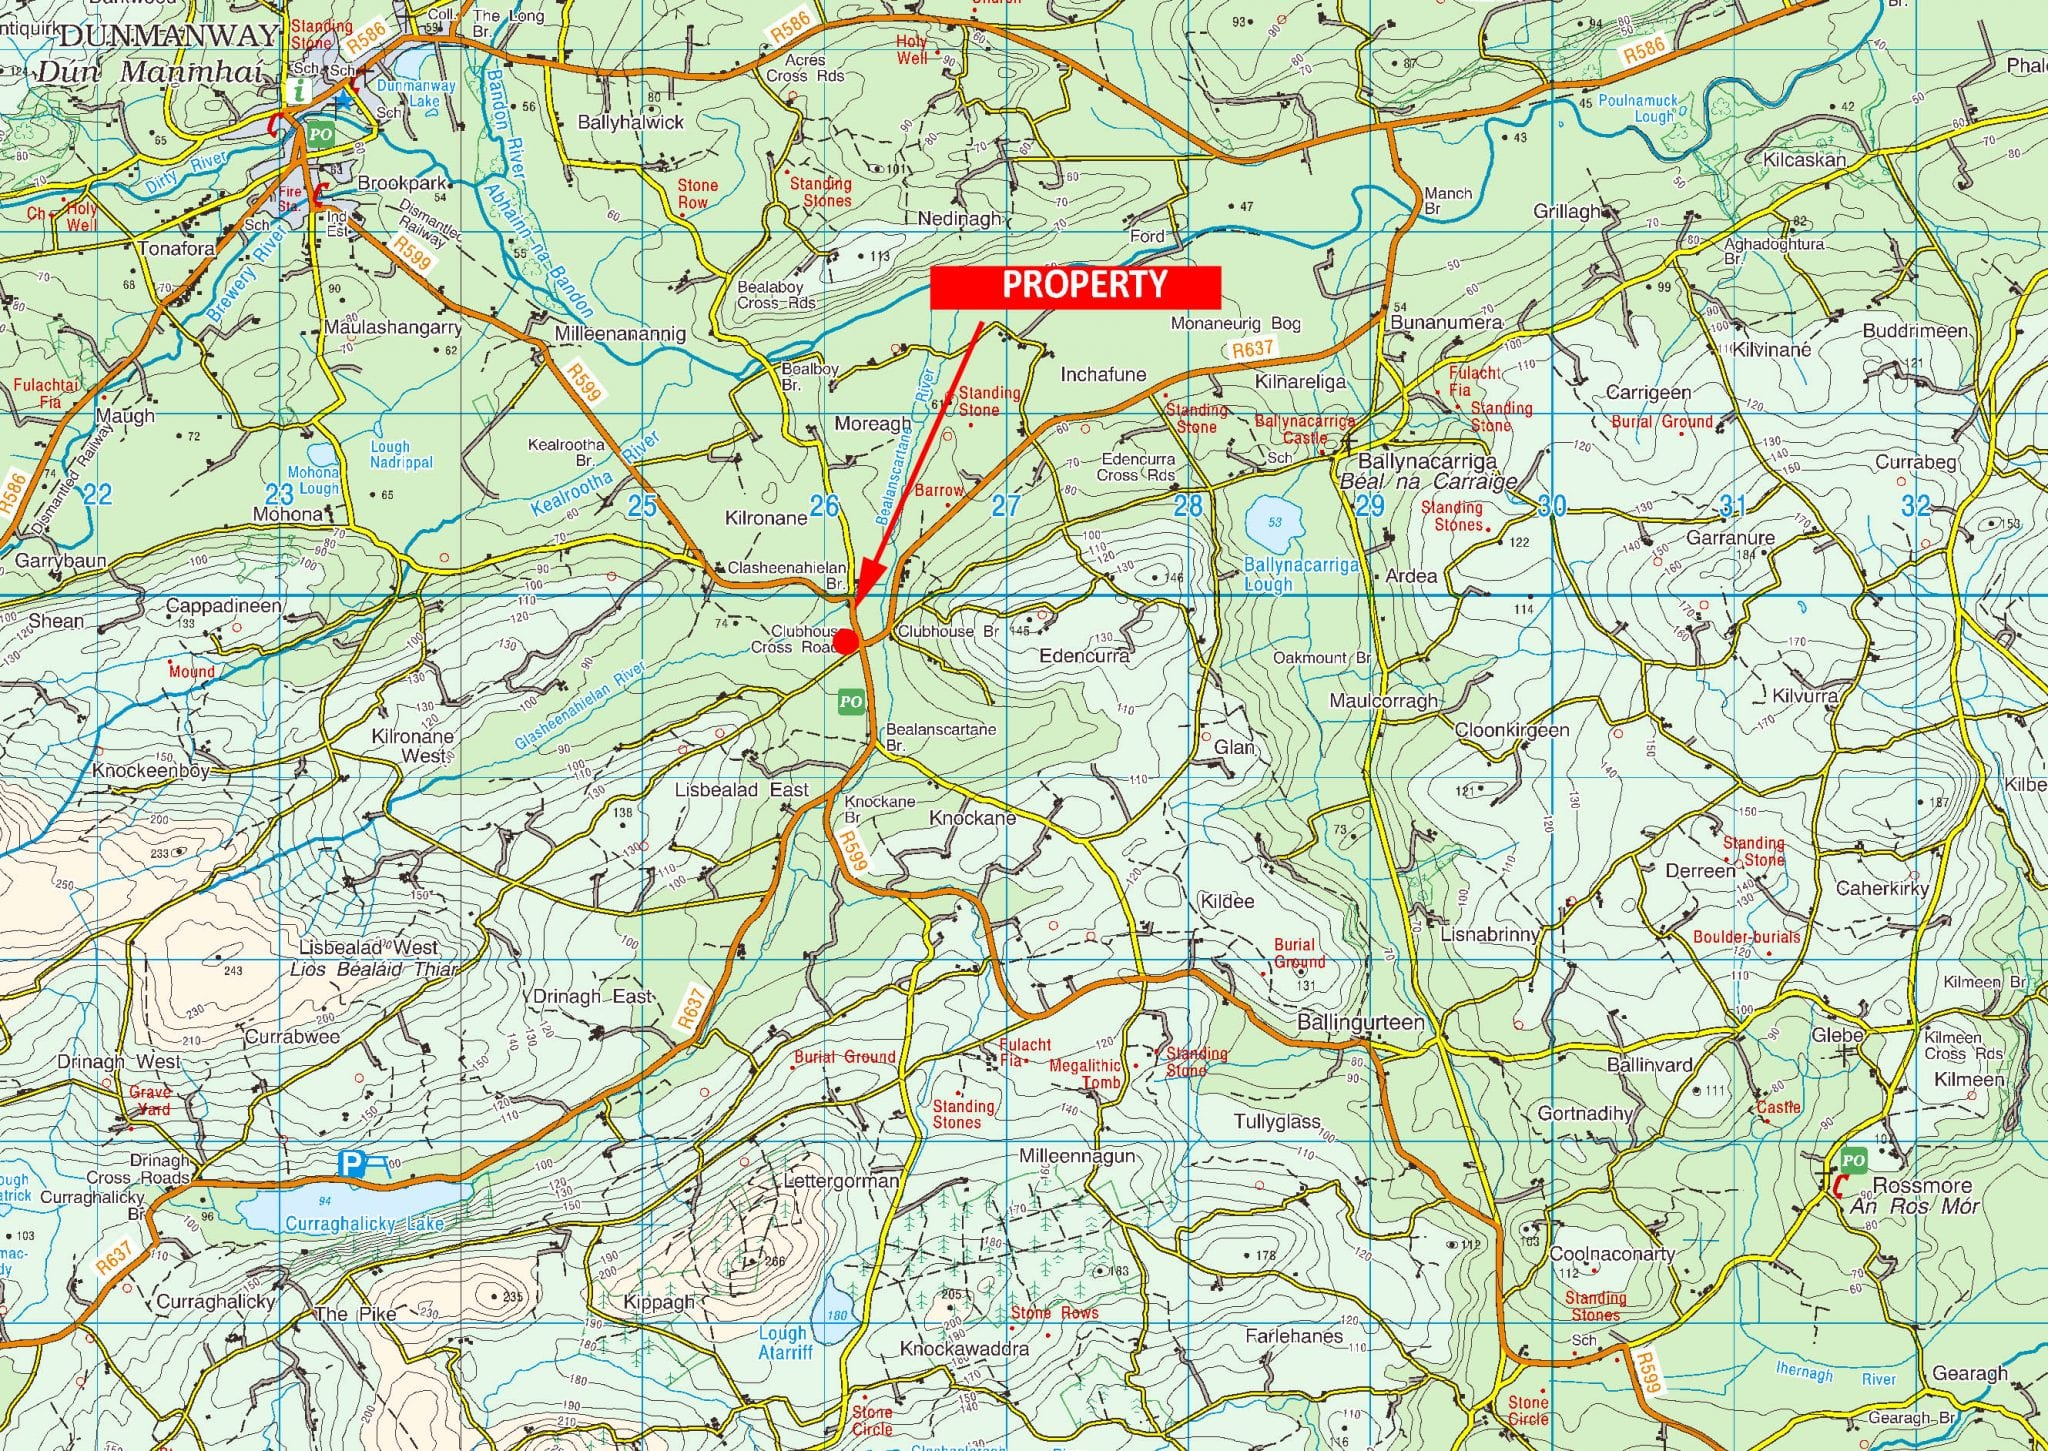 OS1204 LOCATION MAP